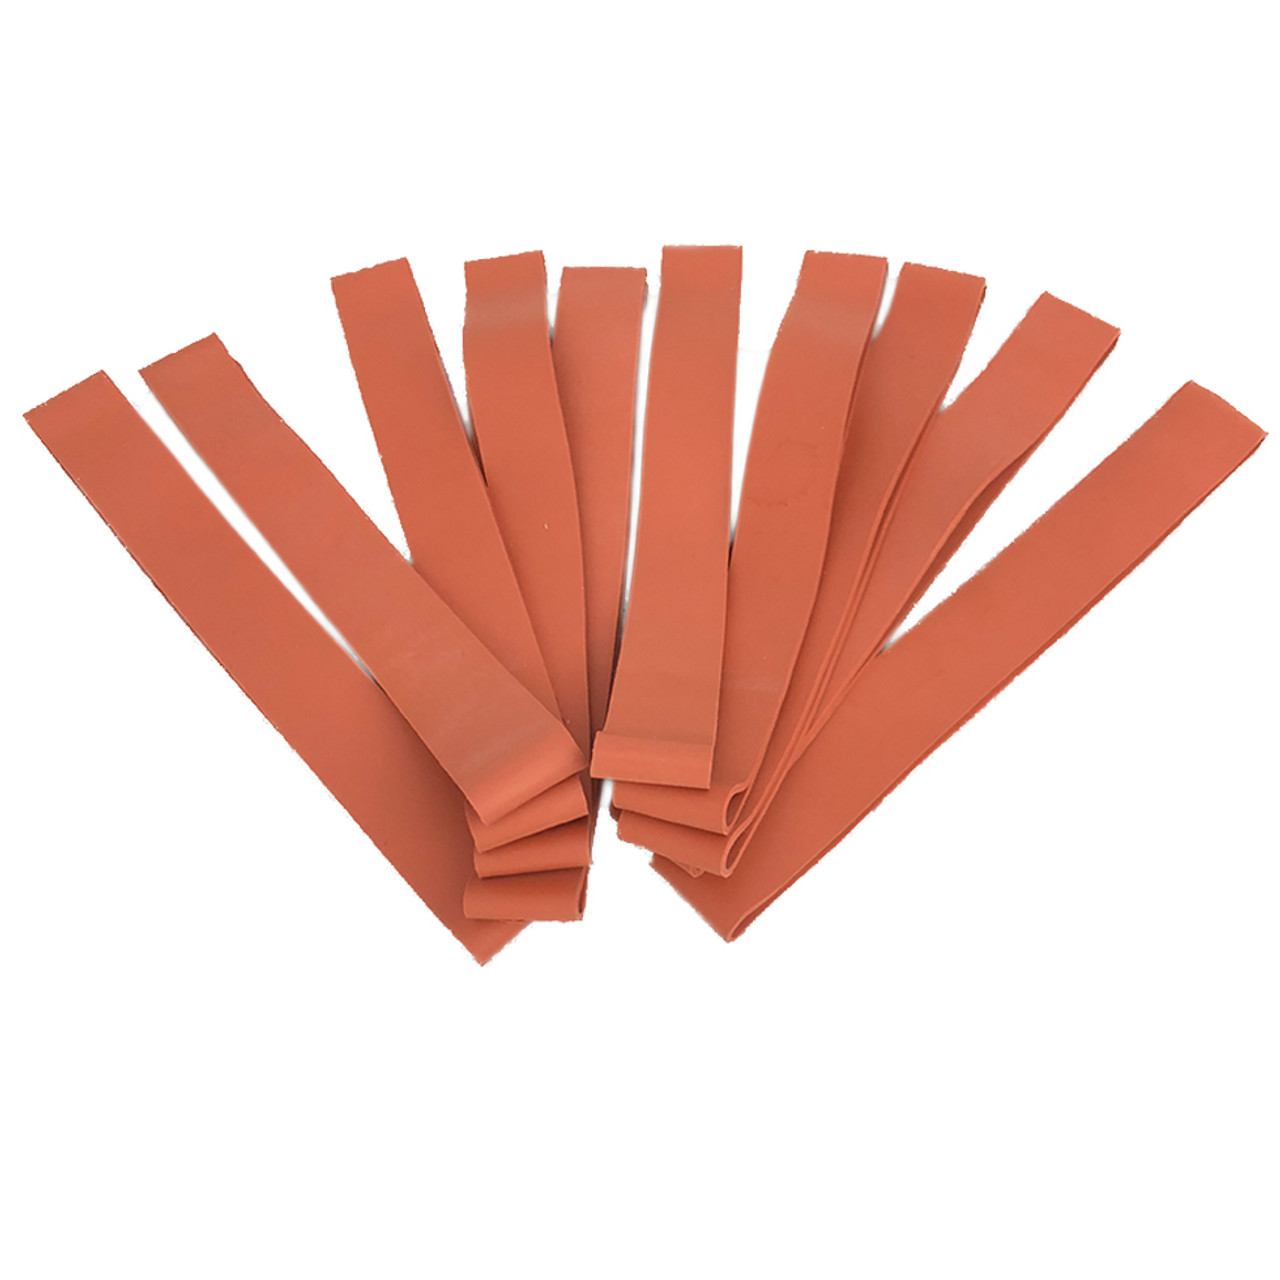 Red dally wraps from Horsecraft, pack of 10.